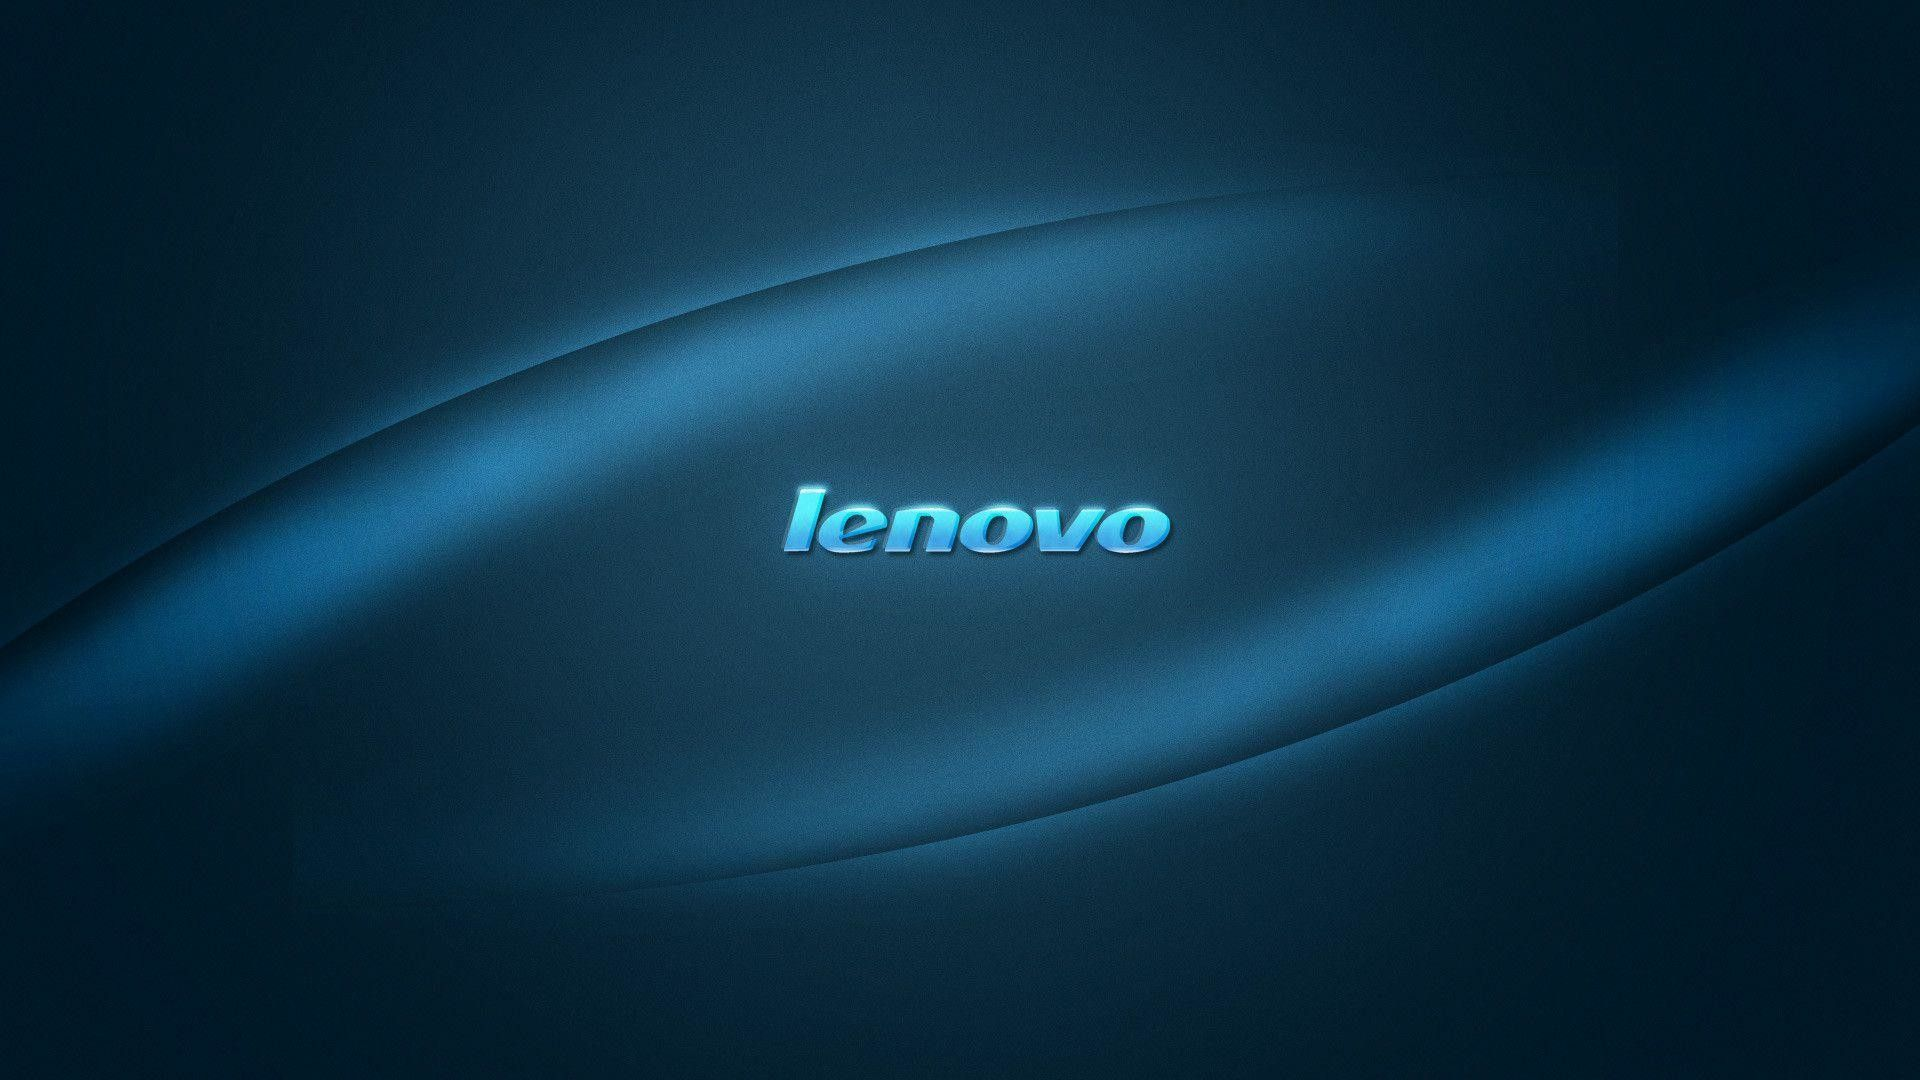 1920x1080 Lenovo Wallpaper Collection in HD for Download